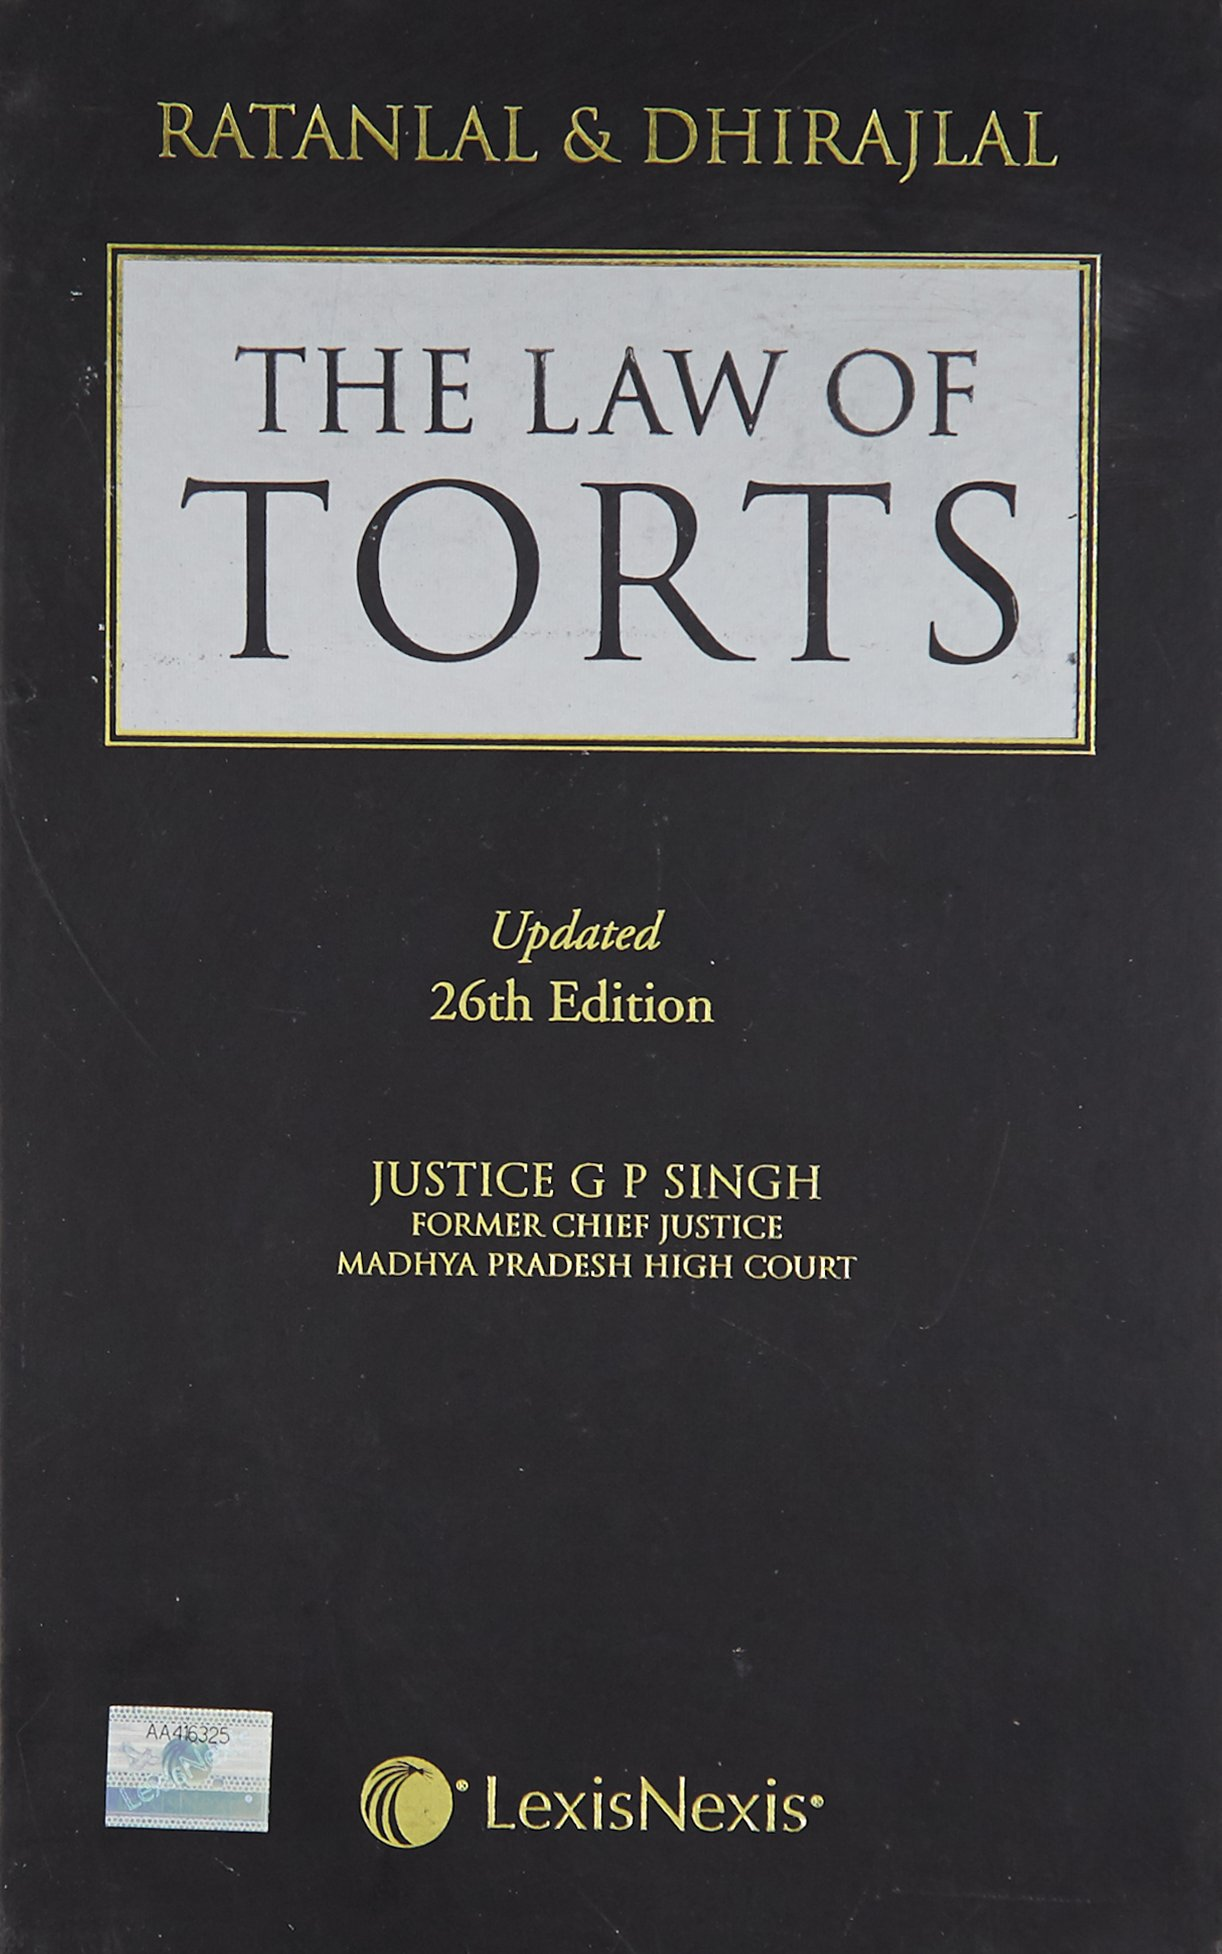 Ratanlal and Dhirajlal The Law of Torts Updated 26th Edition